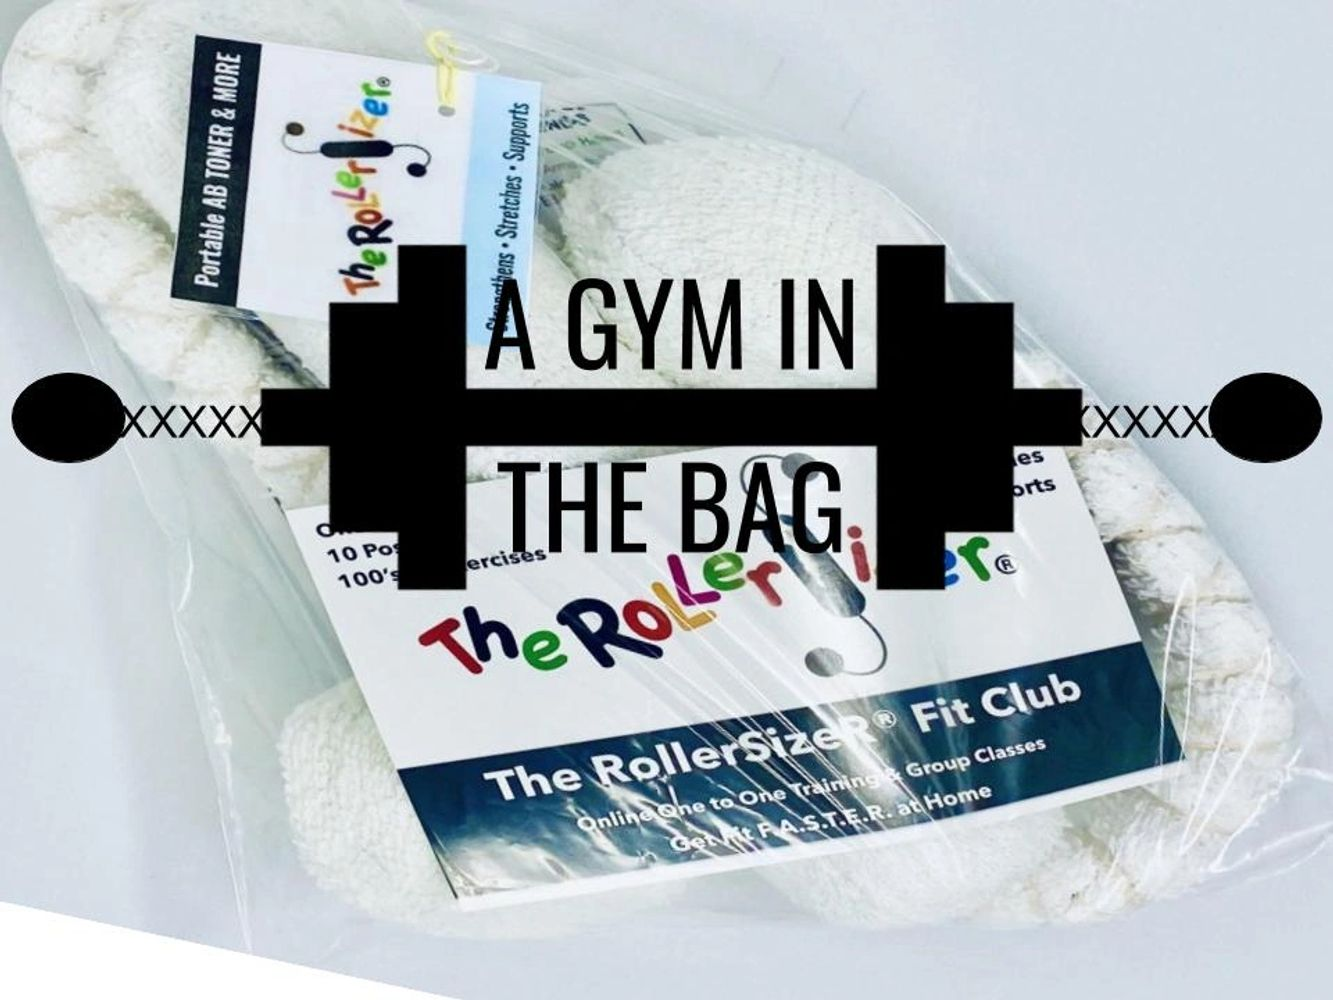 The RollerSizeR is a Gym In A Bag. 500 hundred exercises and fits in a purse.